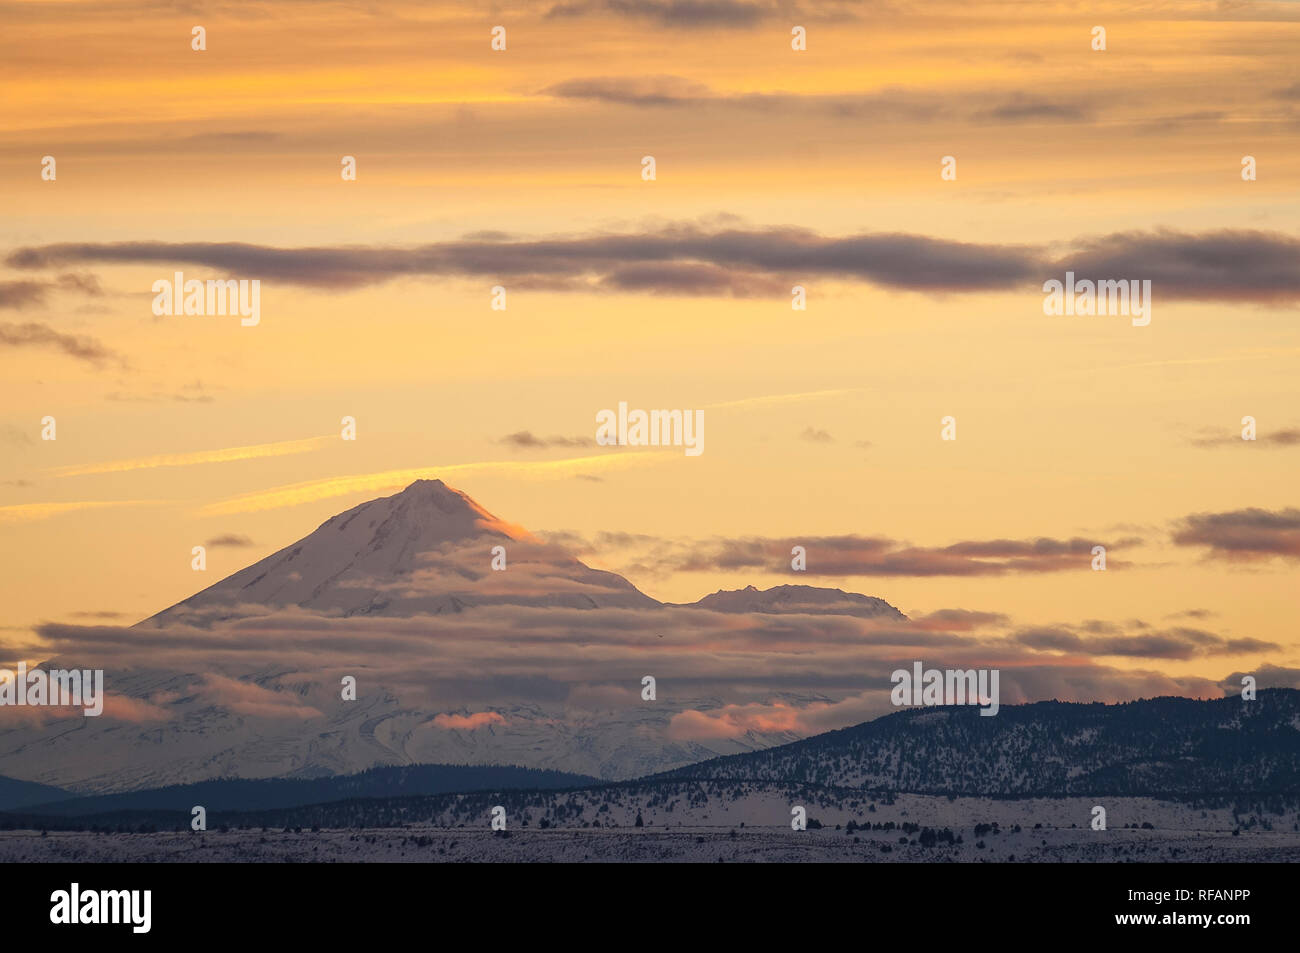 Mount Shasta at sunset from Lower Klamath National Wildlife Refuge, northern California. - Stock Image